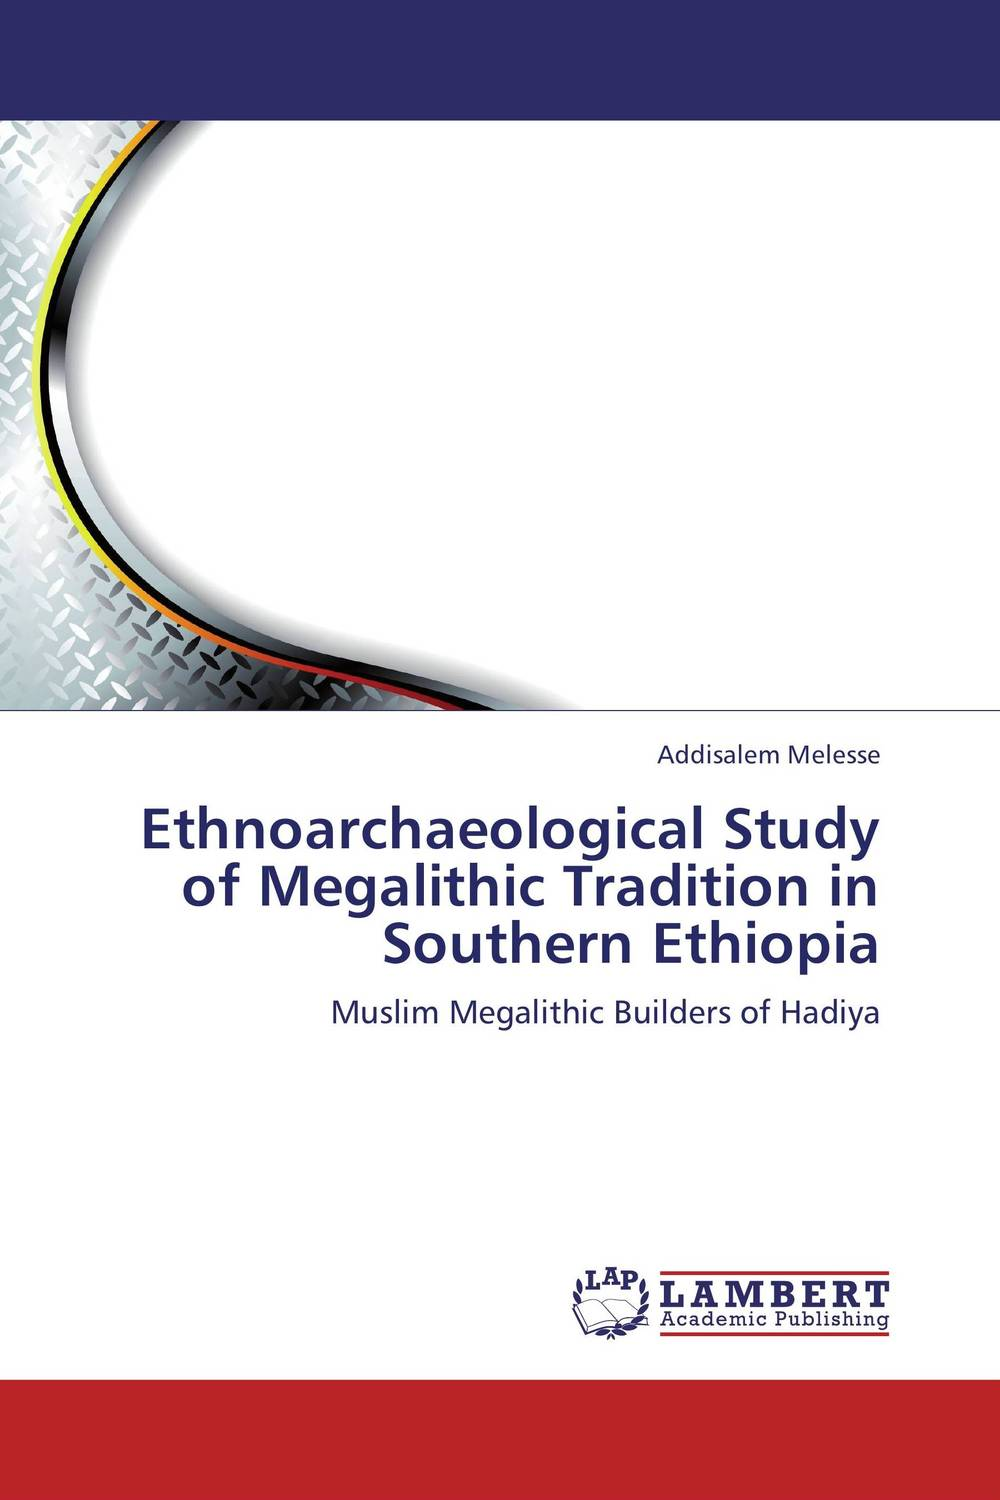 Ethnoarchaeological Study of Megalithic Tradition in Southern Ethiopia phosphorus sorption chractersitics of some soils of southern ethiopia